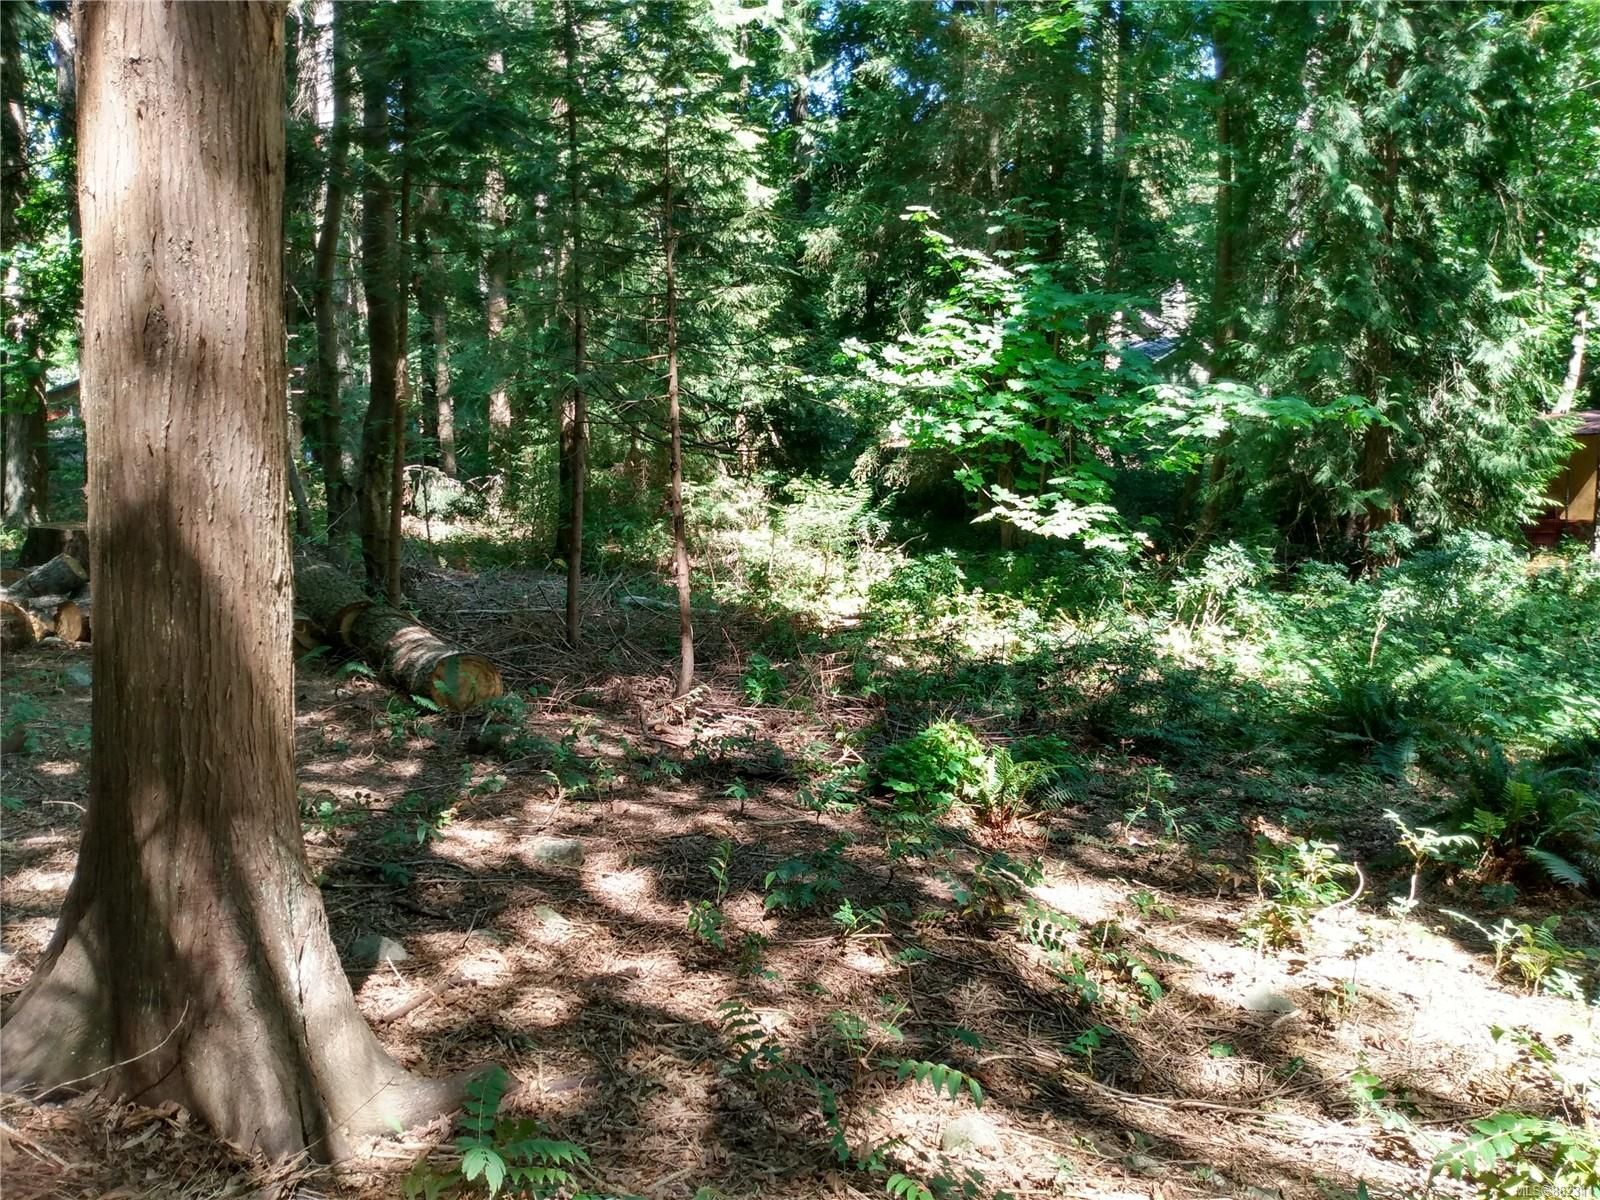 Main Photo: 99 Pirates Lane in : Isl Protection Island Land for sale (Islands)  : MLS®# 882311